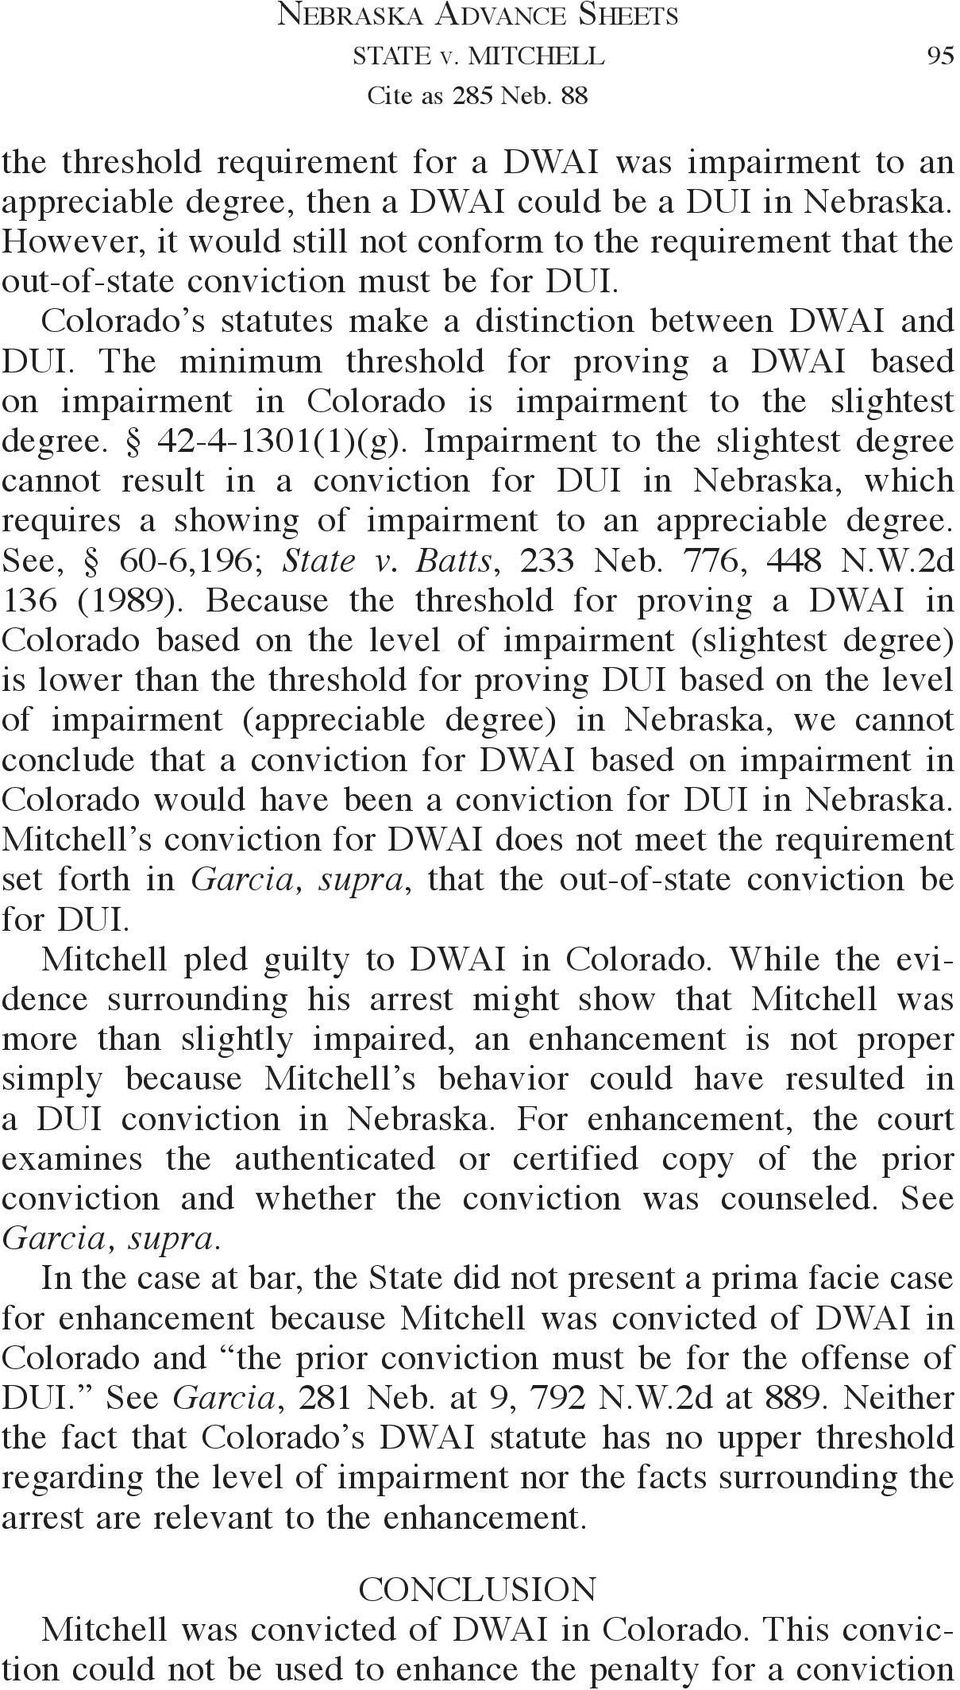 The minimum threshold for proving a DWAI based on impairment in Colorado is impairment to the slightest degree. 42-4-1301(1)(g).